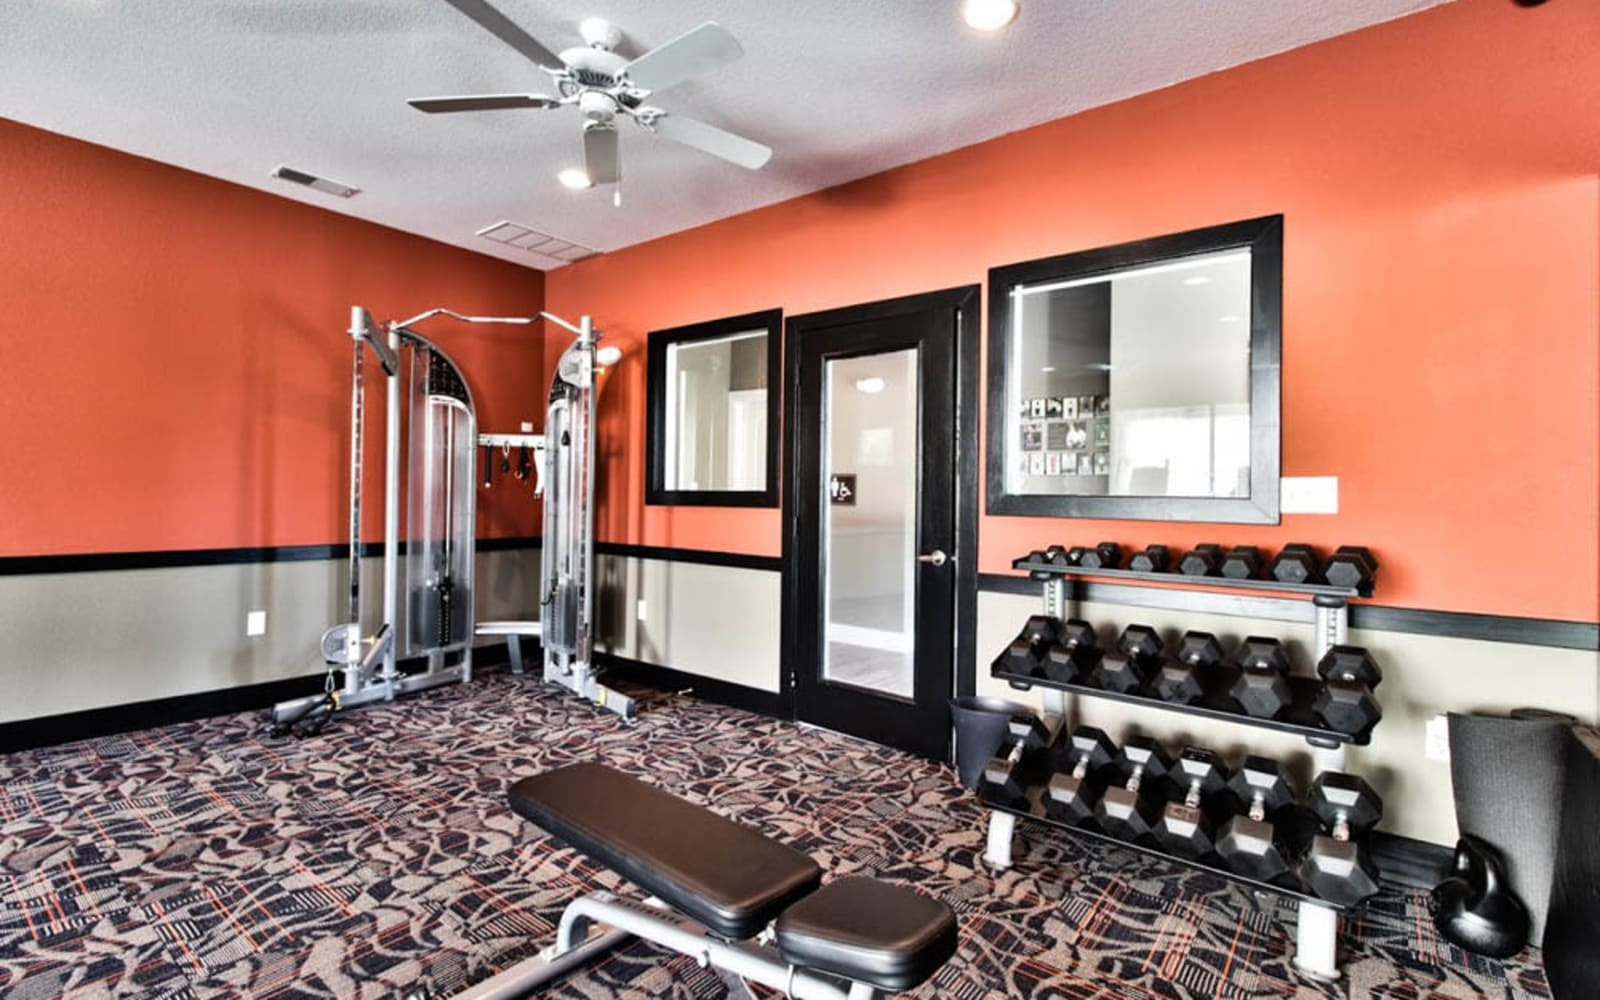 Fitness center with free weights at Aventura at Mid Rivers in Saint Charles, Missouri.